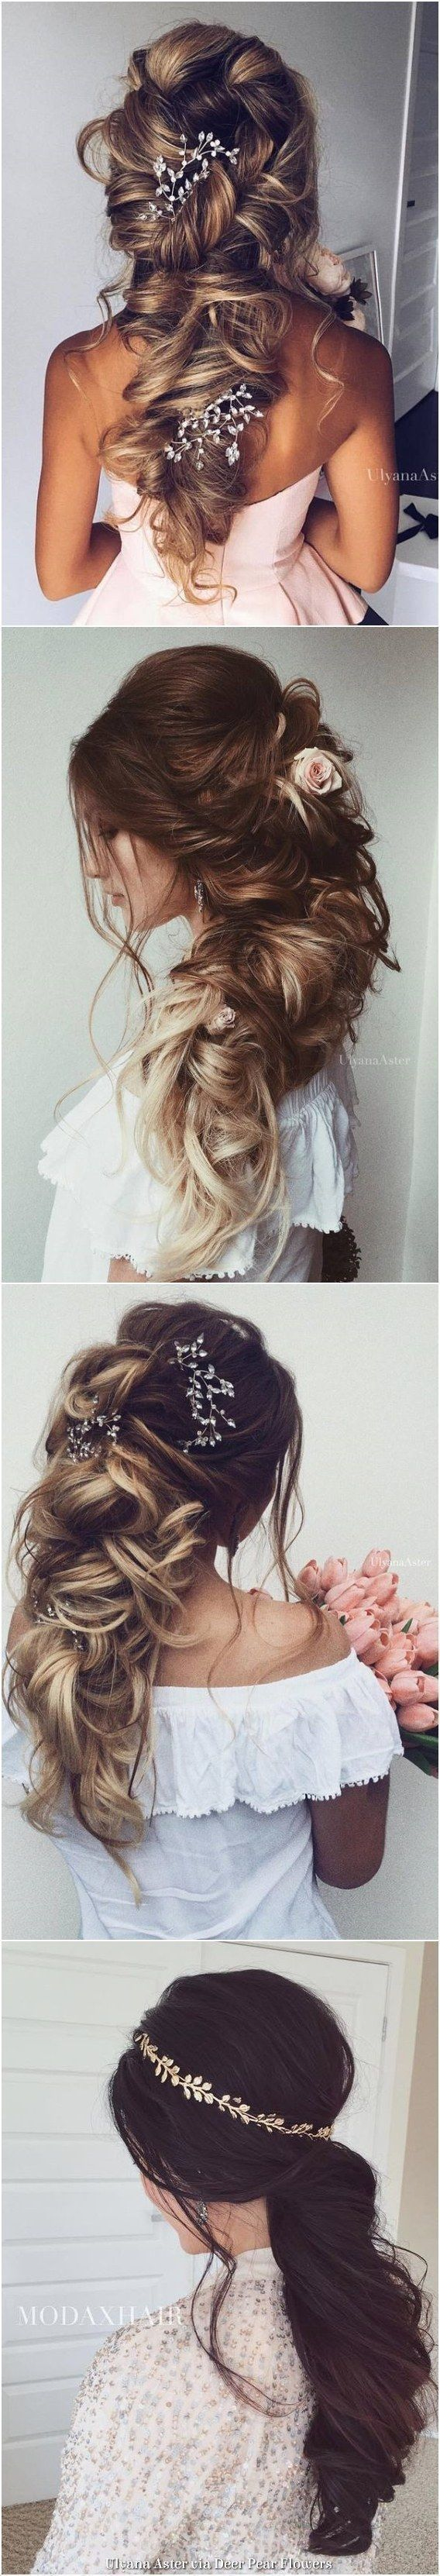 Pin by Alan Tabone on Updos Pinterest Updos Weddings and Hair